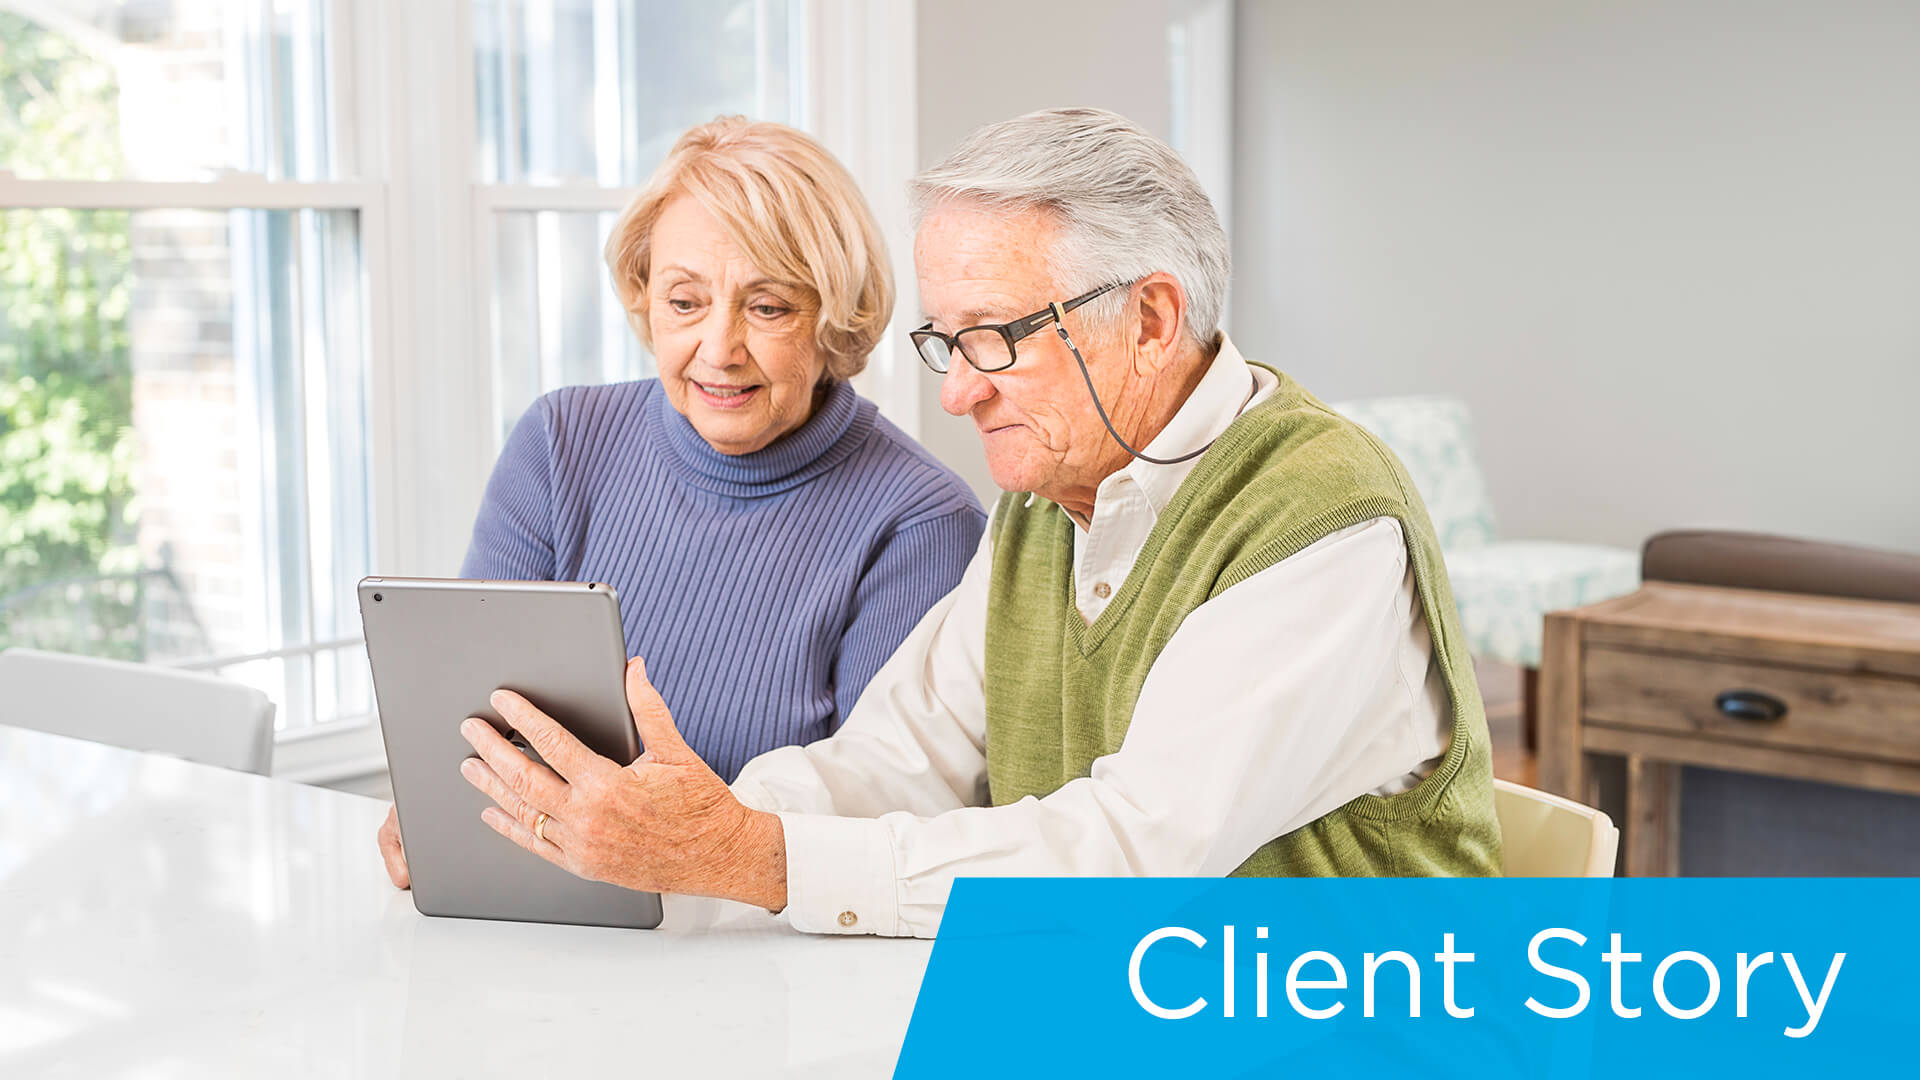 Client-telehealth_elderly couple using tablet for telehealth appointment